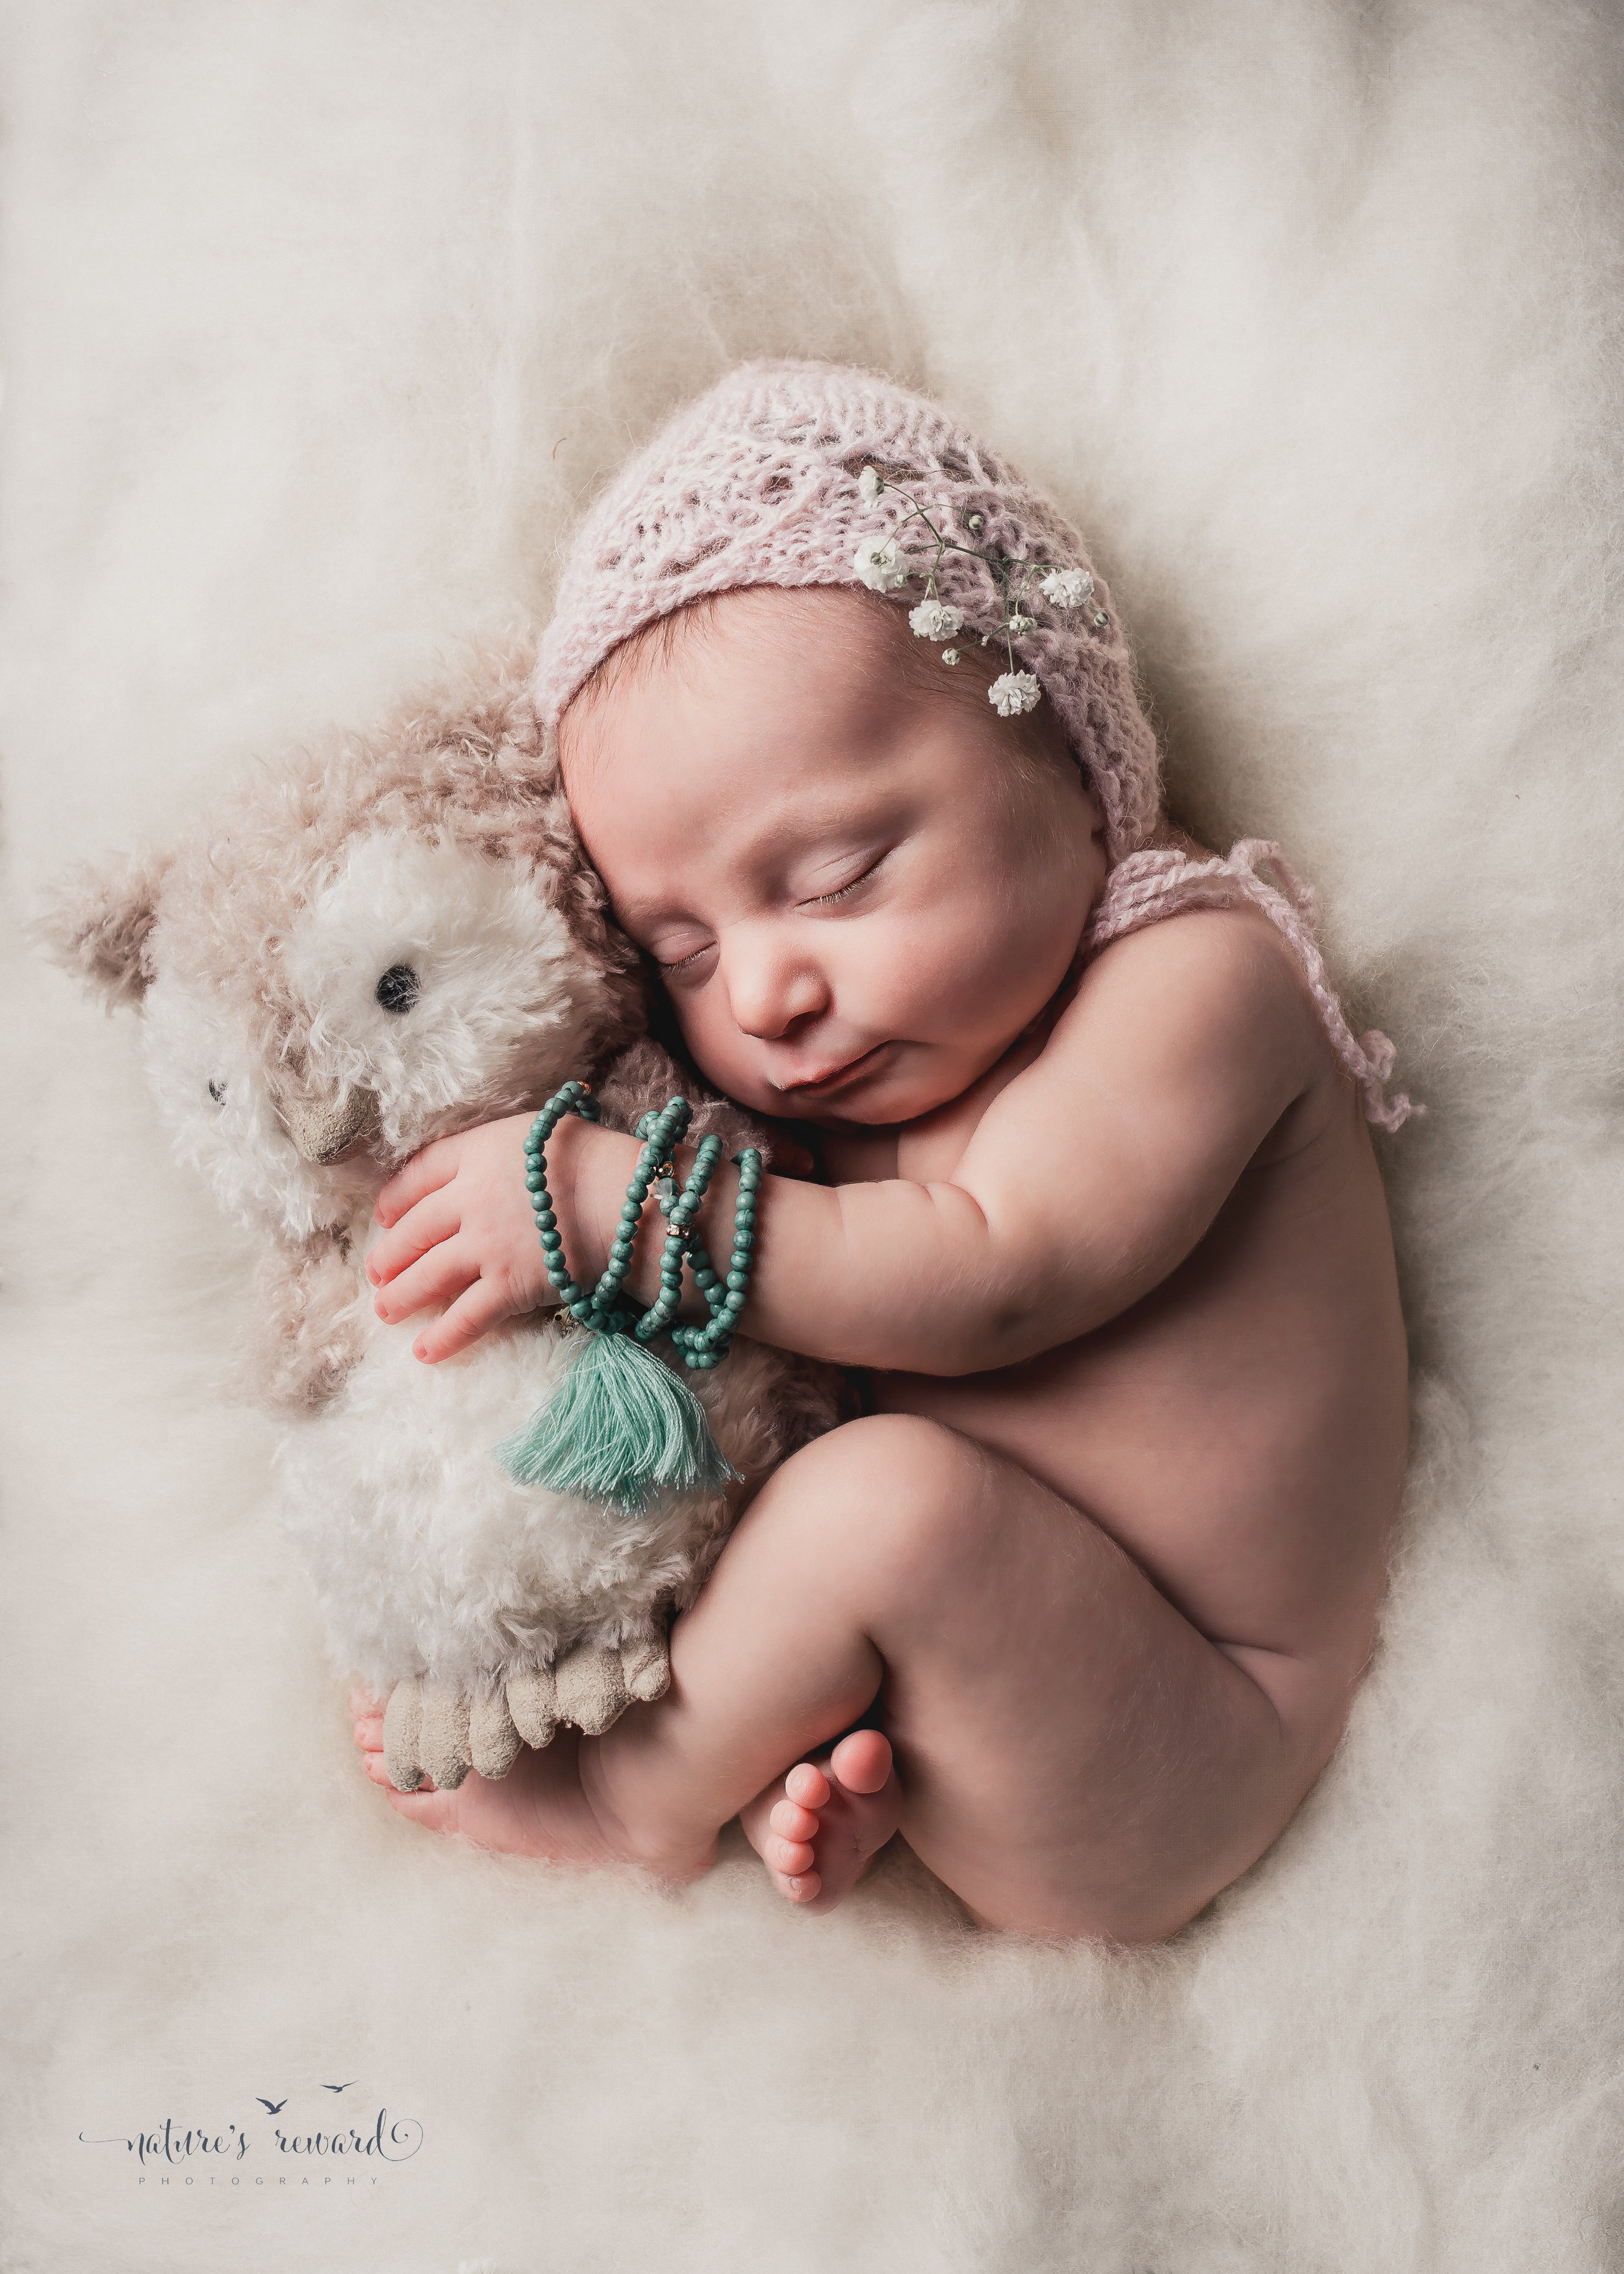 Newborn baby portrait in whites and soft pink, laying on a doll bed holding her owl.A Portrait By Nature's Reward Photography, a San Bernardino Family, Child, and Newborn Baby Photographer.